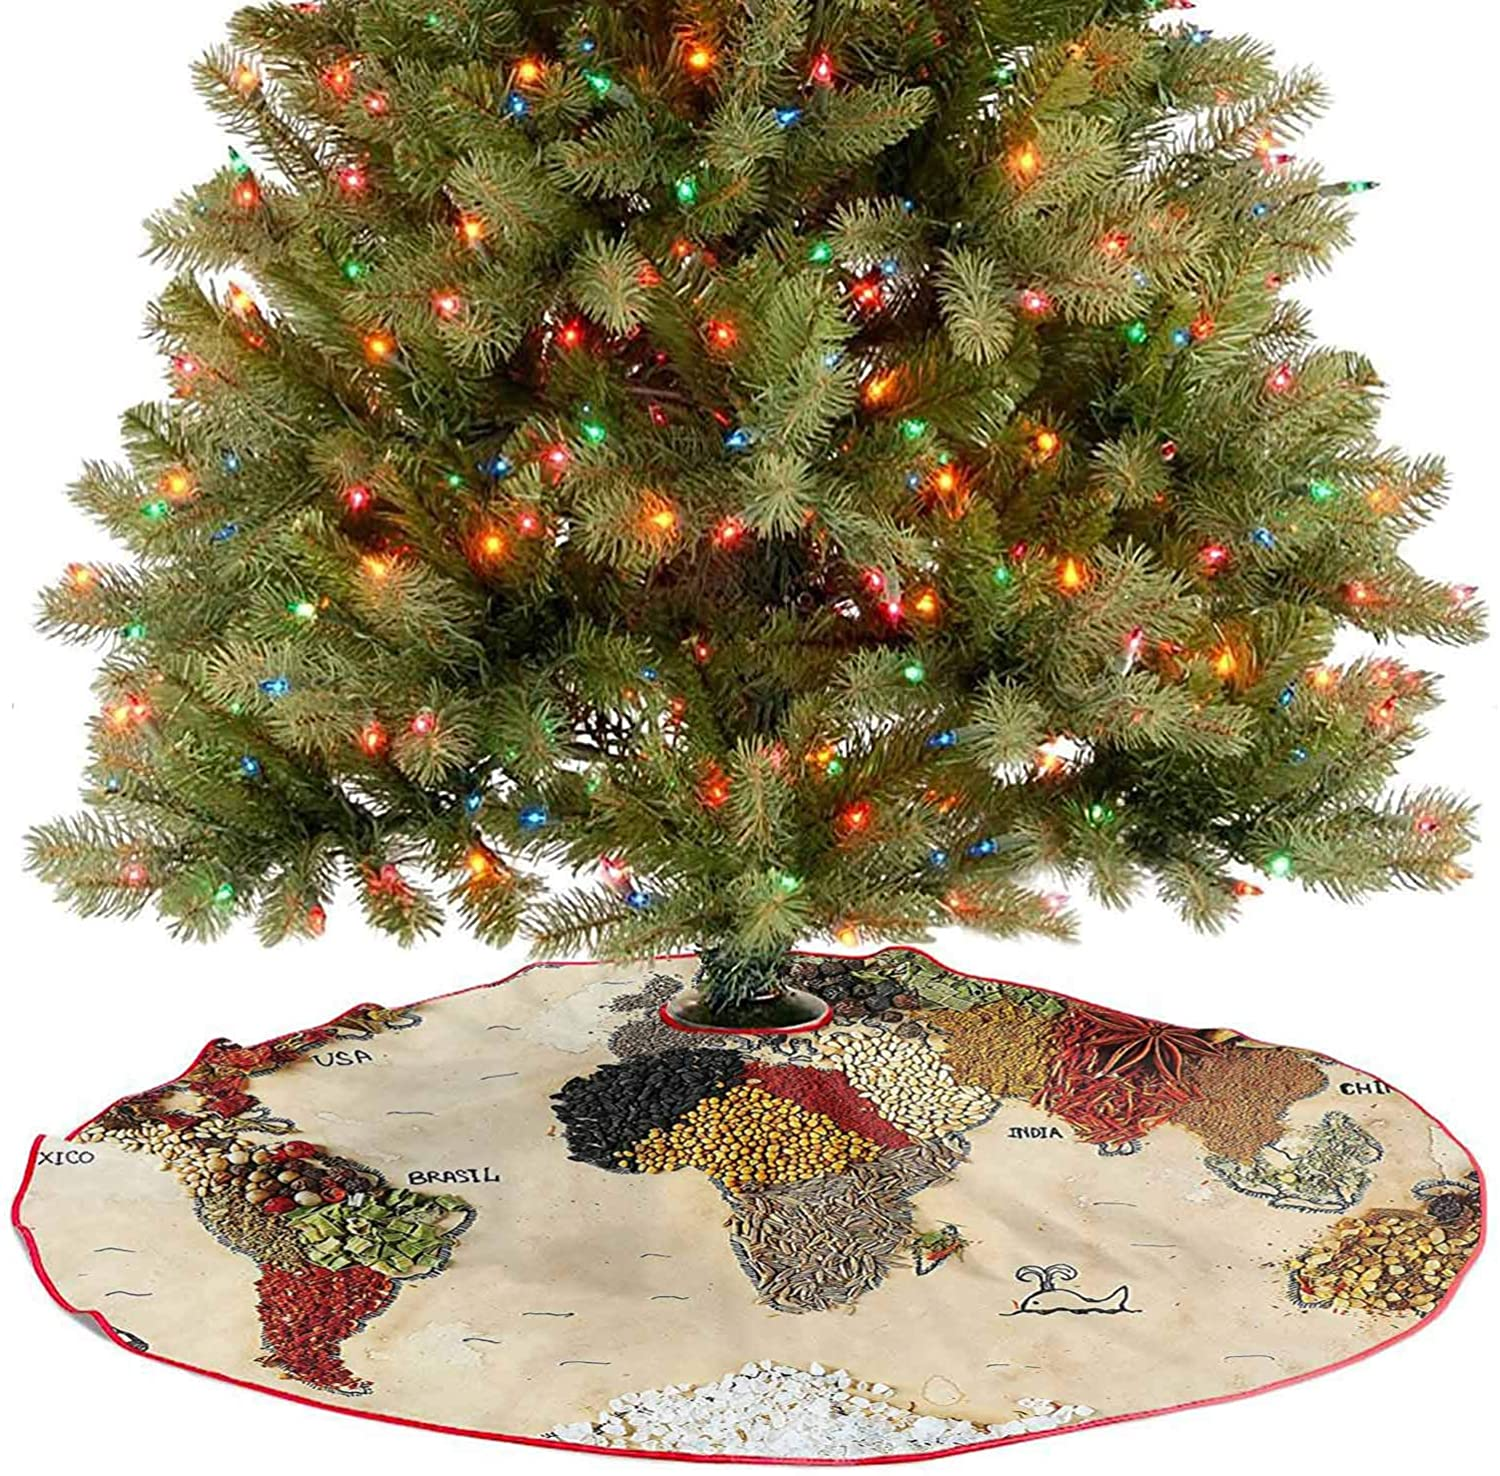 Adorise Tree Mat Map of World Made from Different Spices Design with Food Symbols Boho Style Holiday Decor Ornaments A Contemporary Look and Appeal - 48 Inch